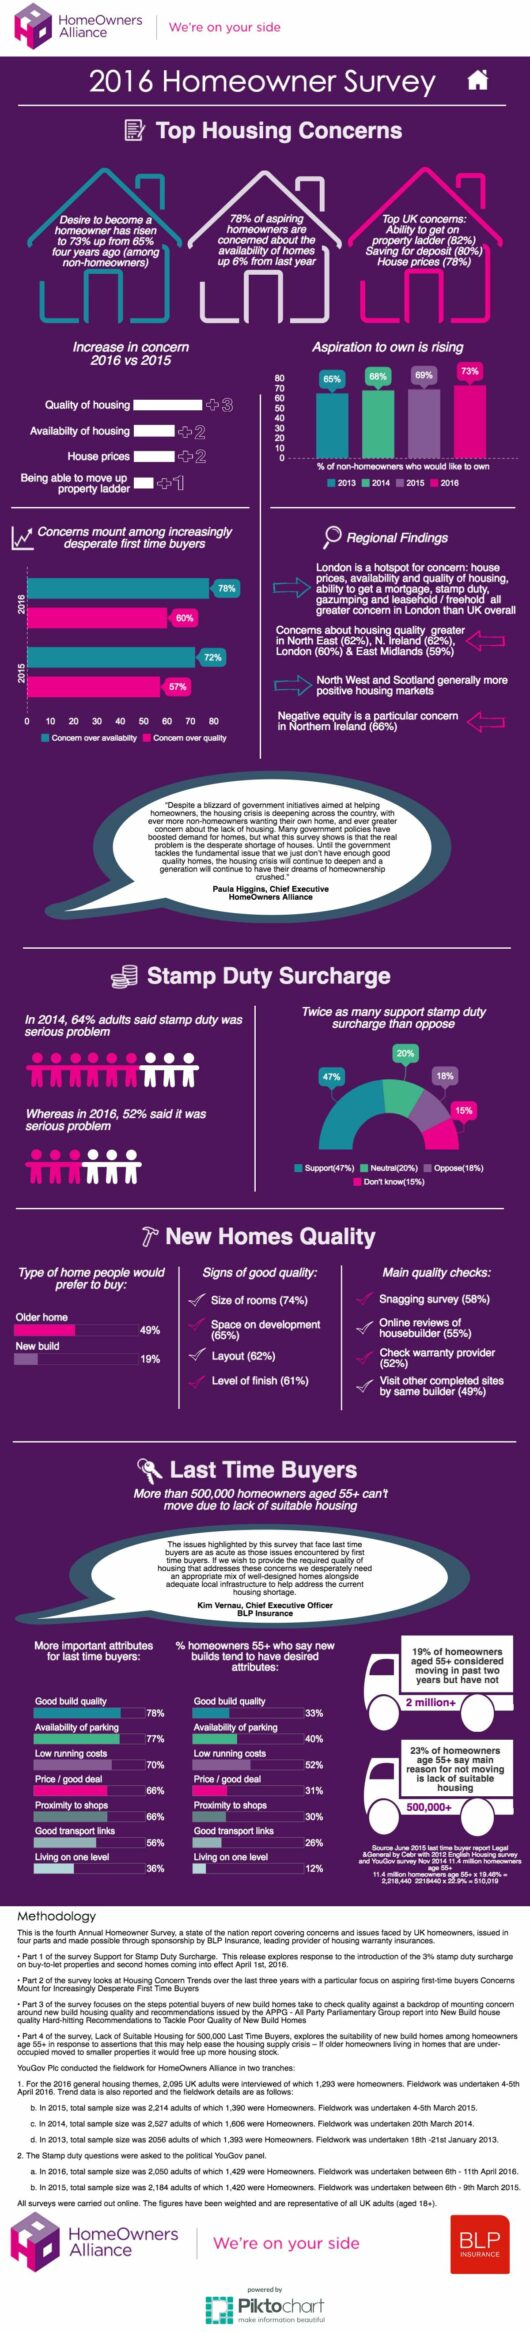 2016 Homeowner Survey infographic